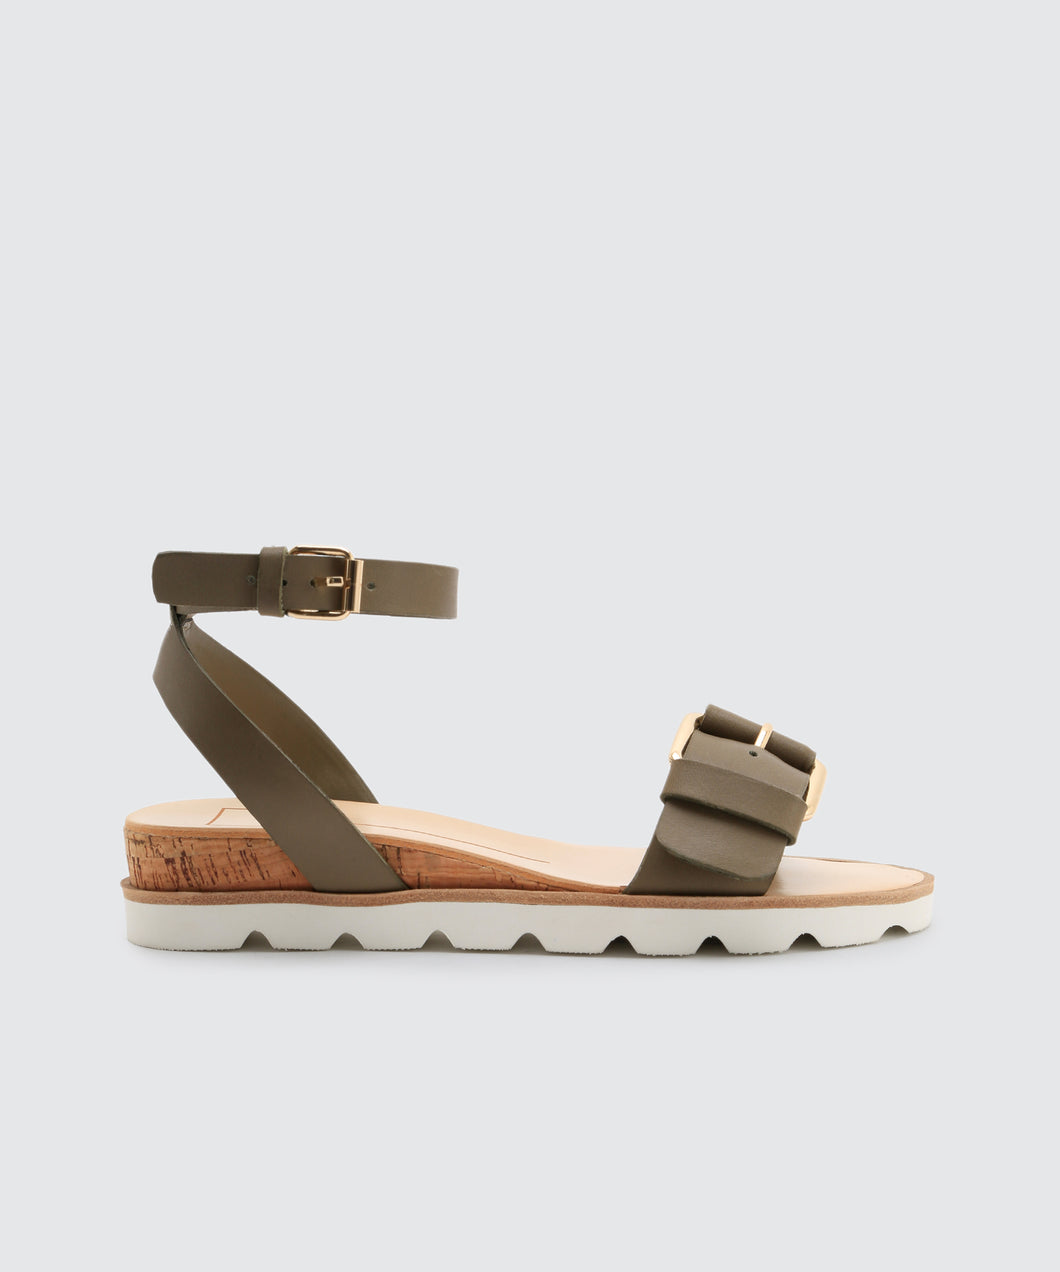 VIRGO SANDALS IN KHAKI -   Dolce Vita